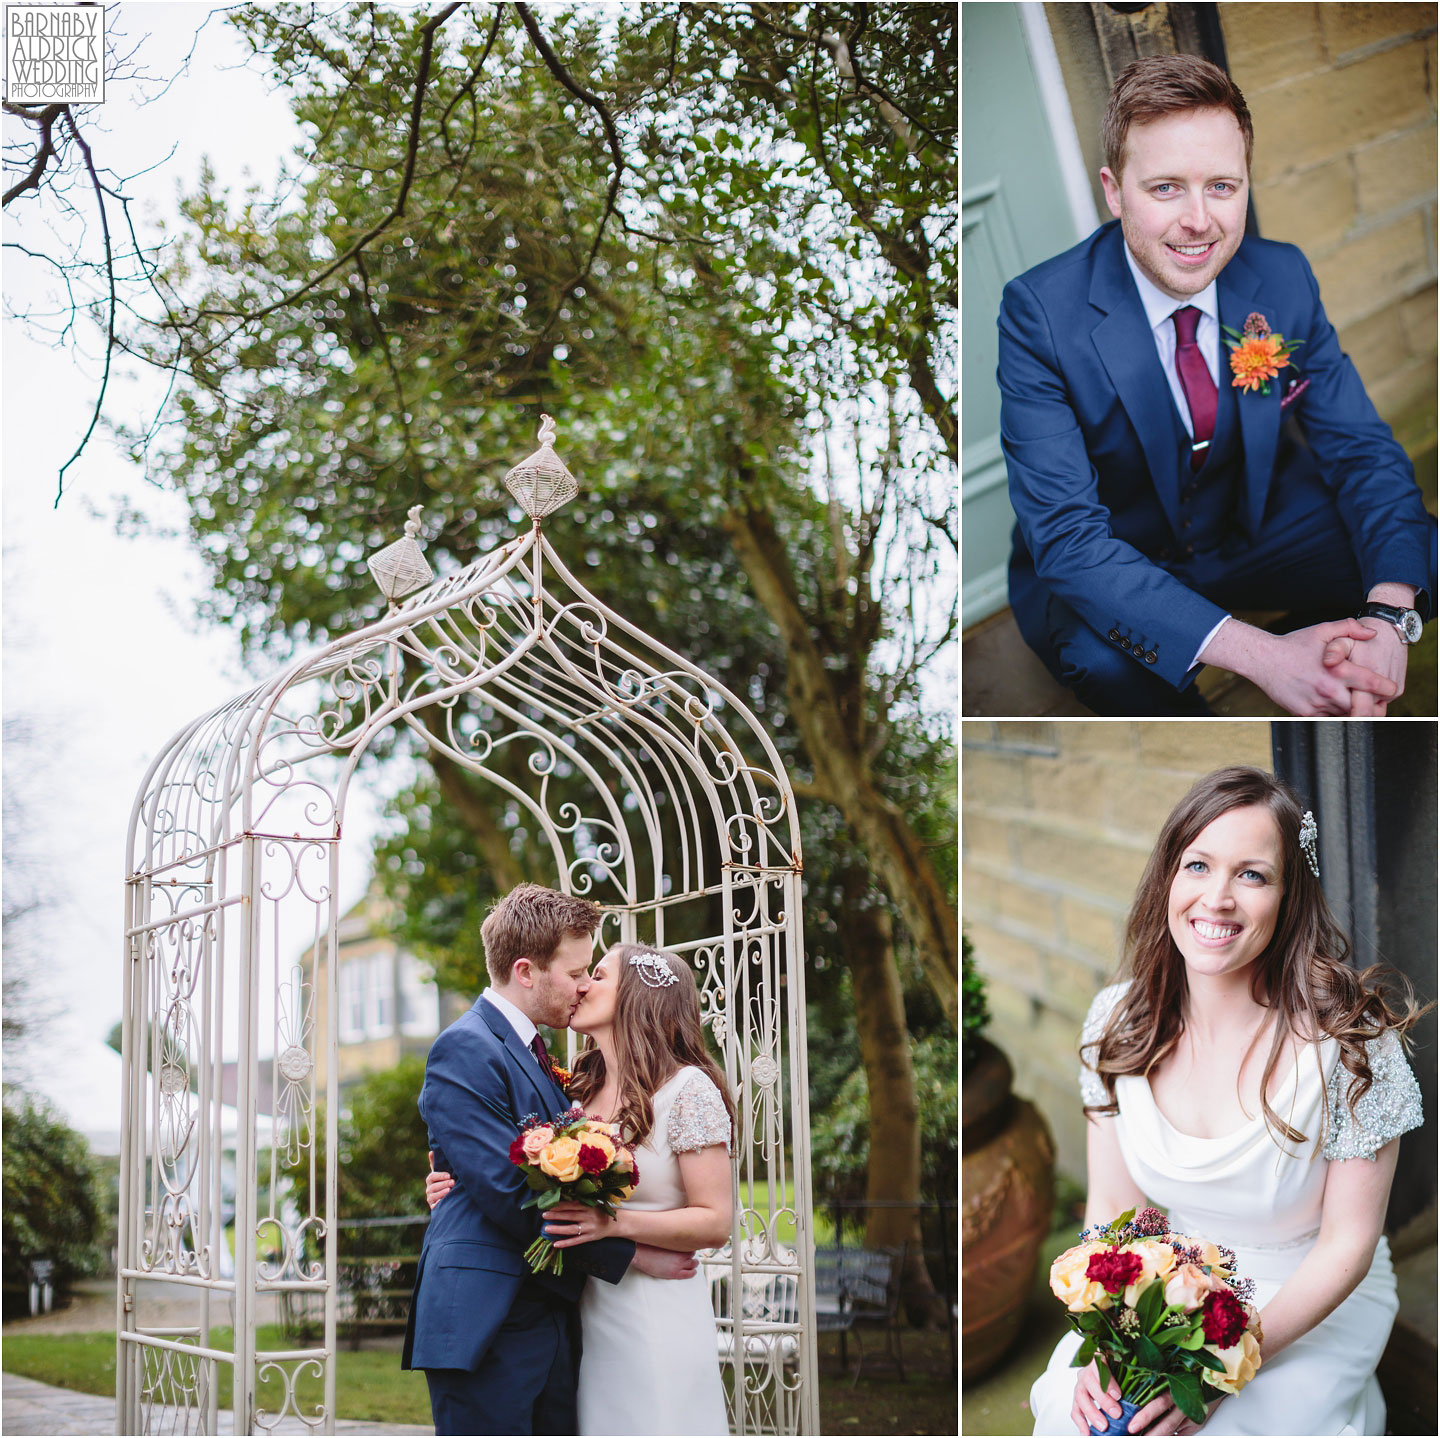 Wedding portraits of a happy couple at Crow Hill a Marsden West Yorkshire Country House by Photographer Barnaby Aldrick